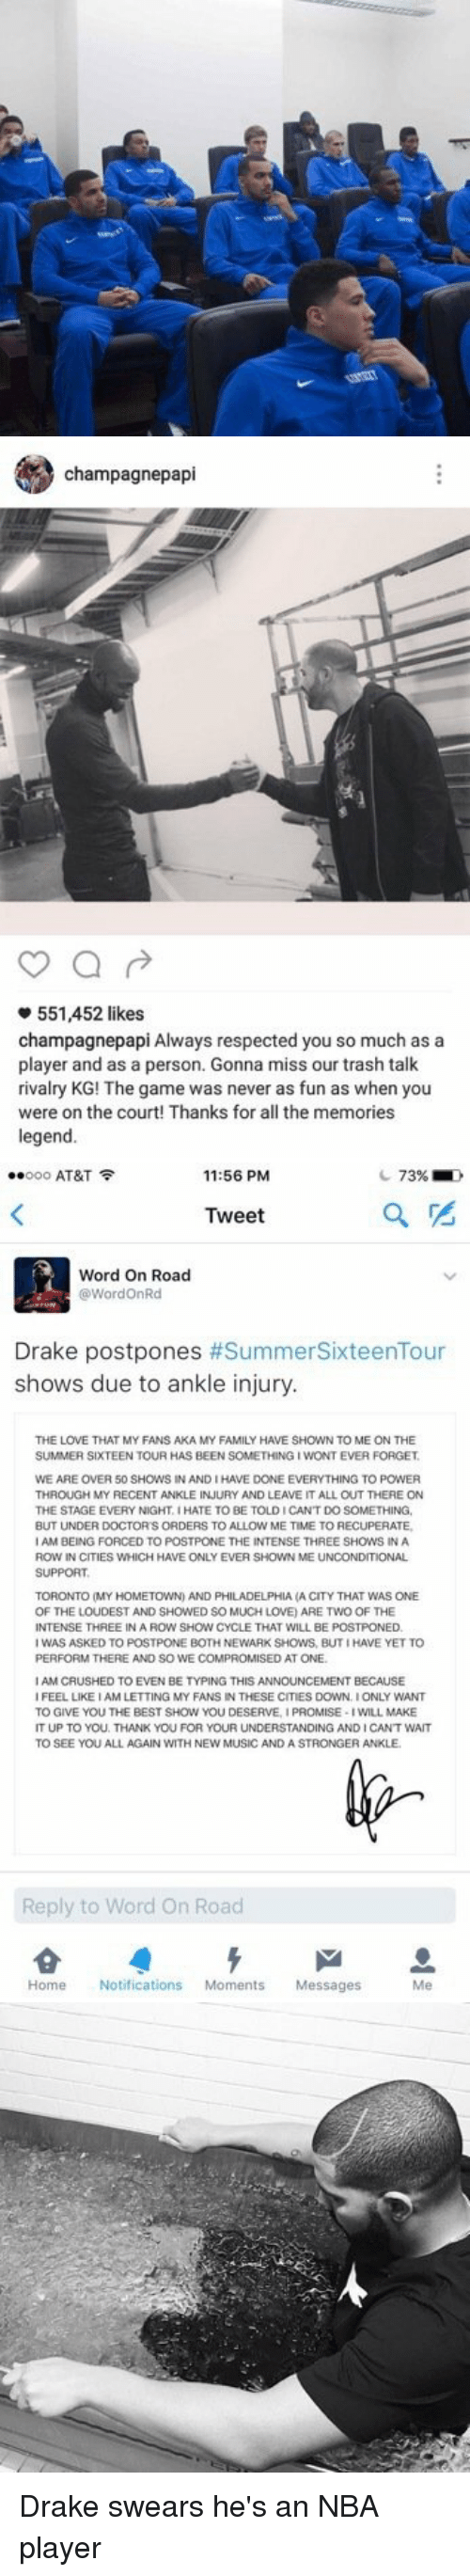 Doctors Orders: champagnepapi  551,452 likes  champagnepapi Always respected you so much as a  player and as a person. Gonna miss our trash talk  rivalry KG! The game was never as fun as when you  were on the court! Thanks for all the memories  legend.   ..ooo AT&T  11:56 PM  73%  Tweet  Word On Road  Word OnRd  Drake postpones  #SummerSixteenTour  shows due to ankle injury.  THE LOVE THAT MY FANS AKA MY FAMILY HAVE SHOWN TO ME ON THE  SUMMER SIXTEEN TOUR HAS BEEN SOMETHING IWONTEVER FORGET  WE ARE OVER 50 SHOWS IN AND IHAVE DONE EVERYTHING TO POWER  THROUGH MY RECENT ANKLE INJURY AND LEAVE IT ALL OUT THERE ON  THE STAGE EVERY NIGHTIHATE TO BE TOLDICANT DO SOMETHING  BUT UNDER DOCTORS ORDERS TO ALLOW  ME TIME TO RECUPERATE,  AM BEING FORCED TO POSTPONE THE INTENSE THREE SHOWSINA  ROW IN CITIES WHICH  HAVE ONLY EVER SHOWN ME UNCONDITIONAL  TORONTO (MY HOMETOWN AND PHILADELPHIA  (A CITY THAT WAS ONE  OF THE LOUDEST AND SHOWED SO MUCH LOVE) ARE TWO OF THE  NTENSE THREE IN A ROW SHOW CYCLE THAT WILL BE  ED  WAS ASKED TO POSTPONE BOTH NEWARK SHOWS, BUTIHAVE YETTO  PERFORM THERE AND SO WE COMPROMISED AT ONE  AM CAUSHED TO EVEN BE TYPING THIS ANNOUNCEMENT BECAUSE  FEEL LIKE IAM LETTING MY FANSINTHESE CITIES DOWN IONLY WANT  TO GIVE YOU THE BEST SHOW YOU DESERVE, IPROMISE  WILL MAKE  IT UP TO YOU, THANK YOU FOR YOUR UNDERSTANDING ANDICANT WAIT  TO SEE YOU ALL AGAIN WITH NEW MUSIC AND A STRONG  ER ANKLE.  Reply to Word on Road  Home Notifications  Moments  Messages Drake swears he's an NBA player